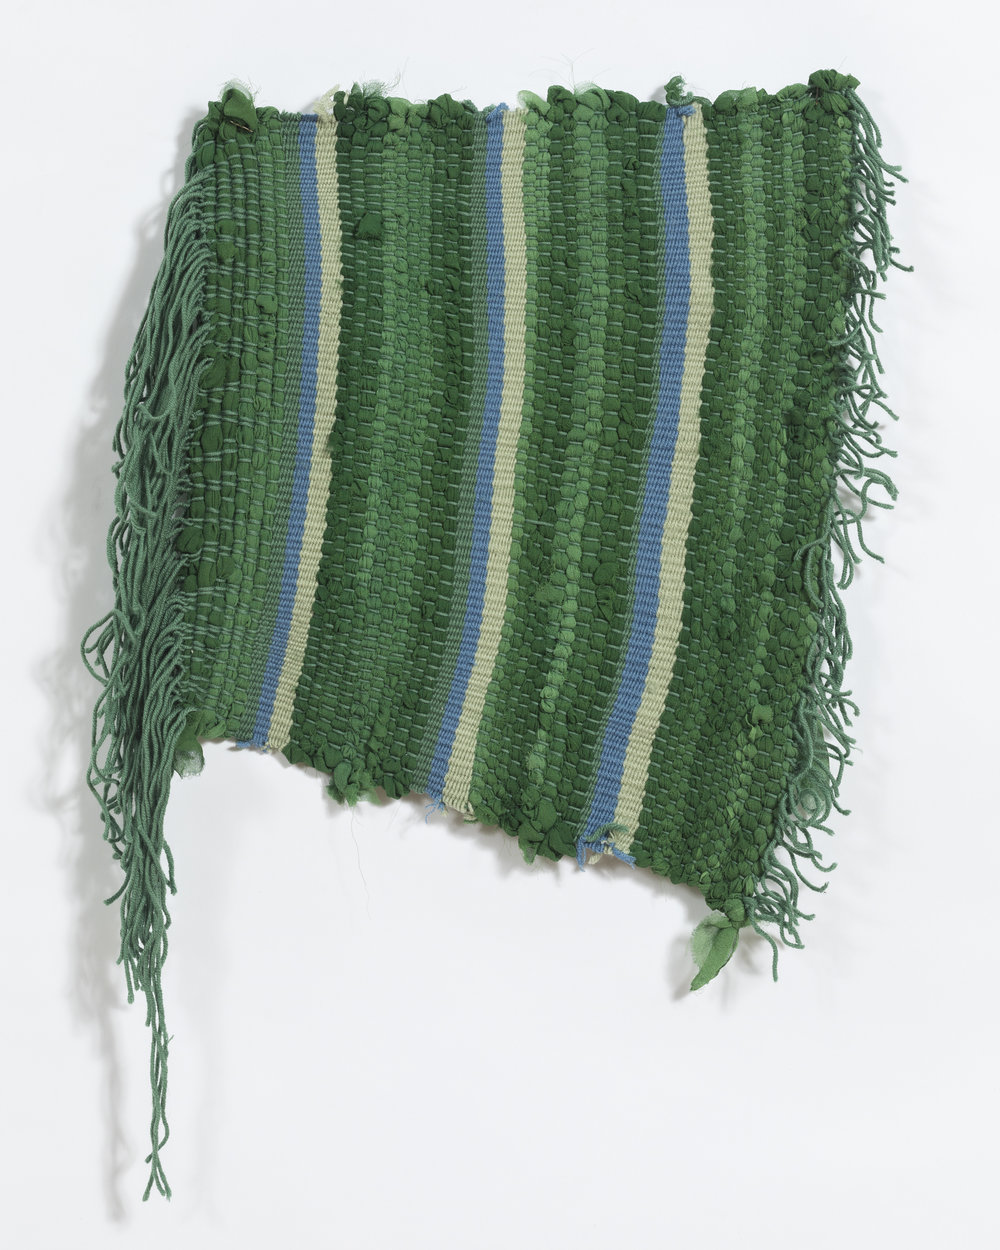 """woven on hand made frame loom, 10 x 12"""", found yarns and silk"""